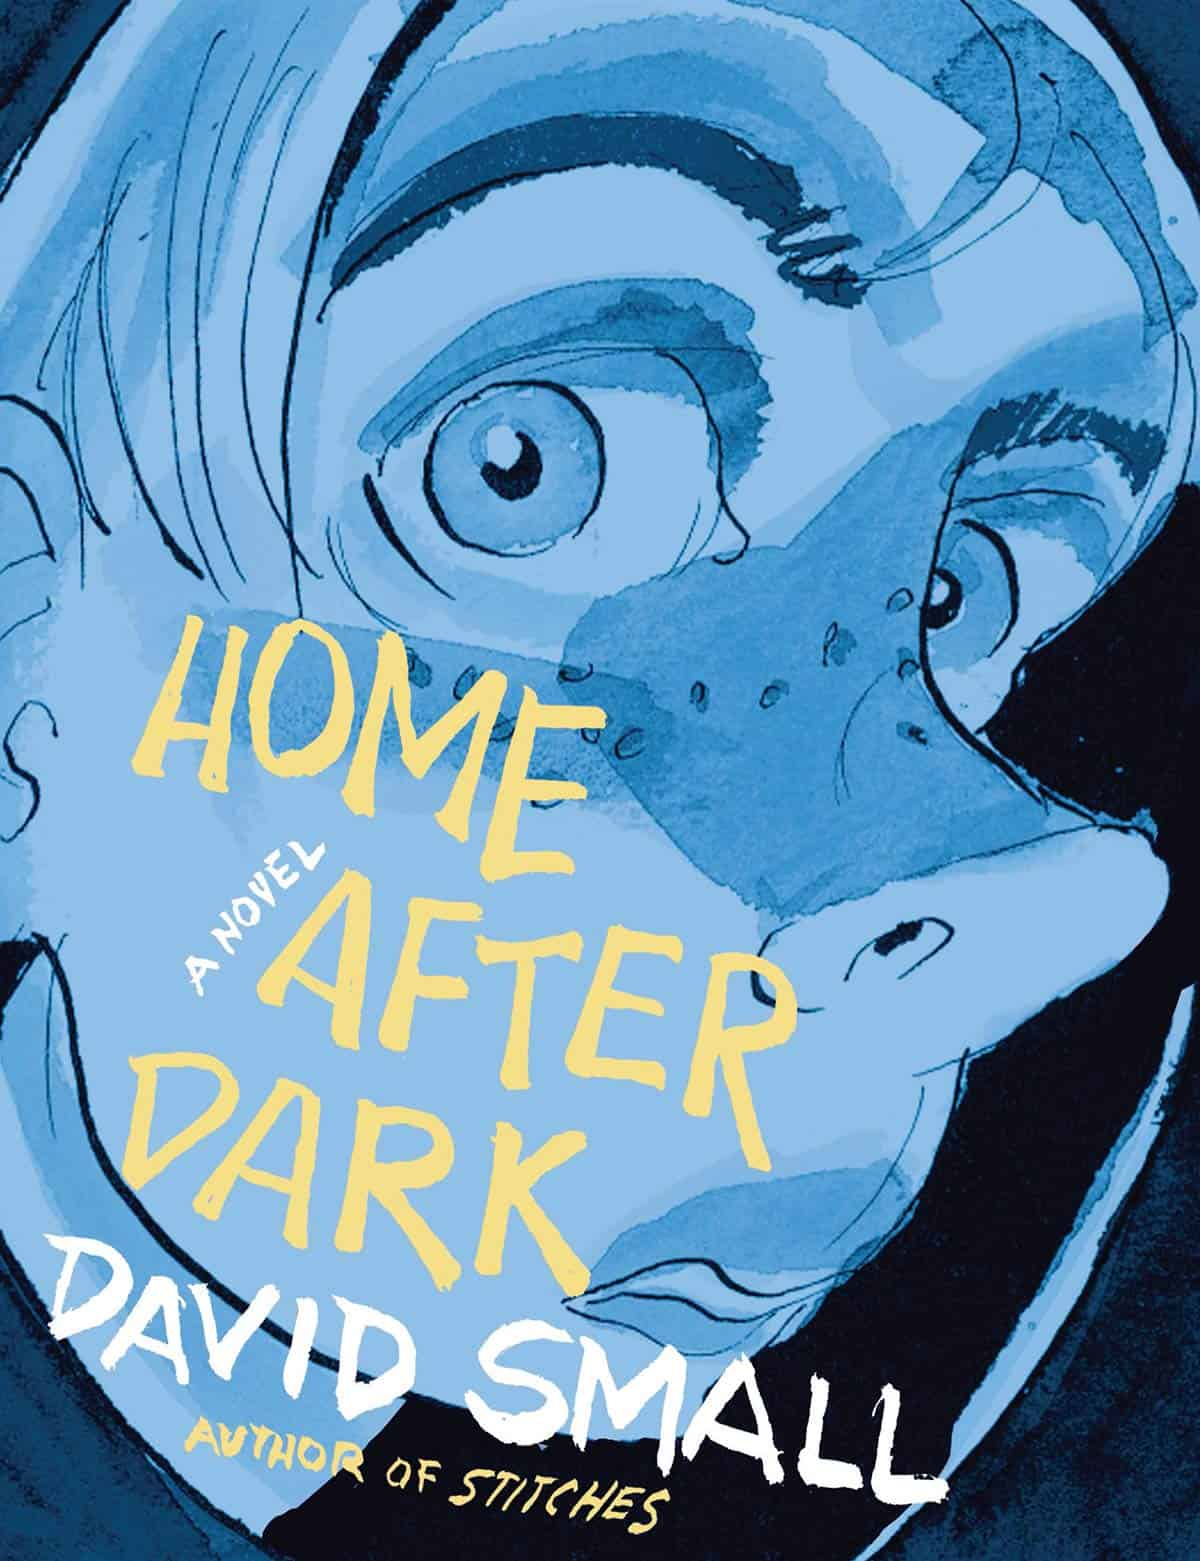 Home After Dark by David Small